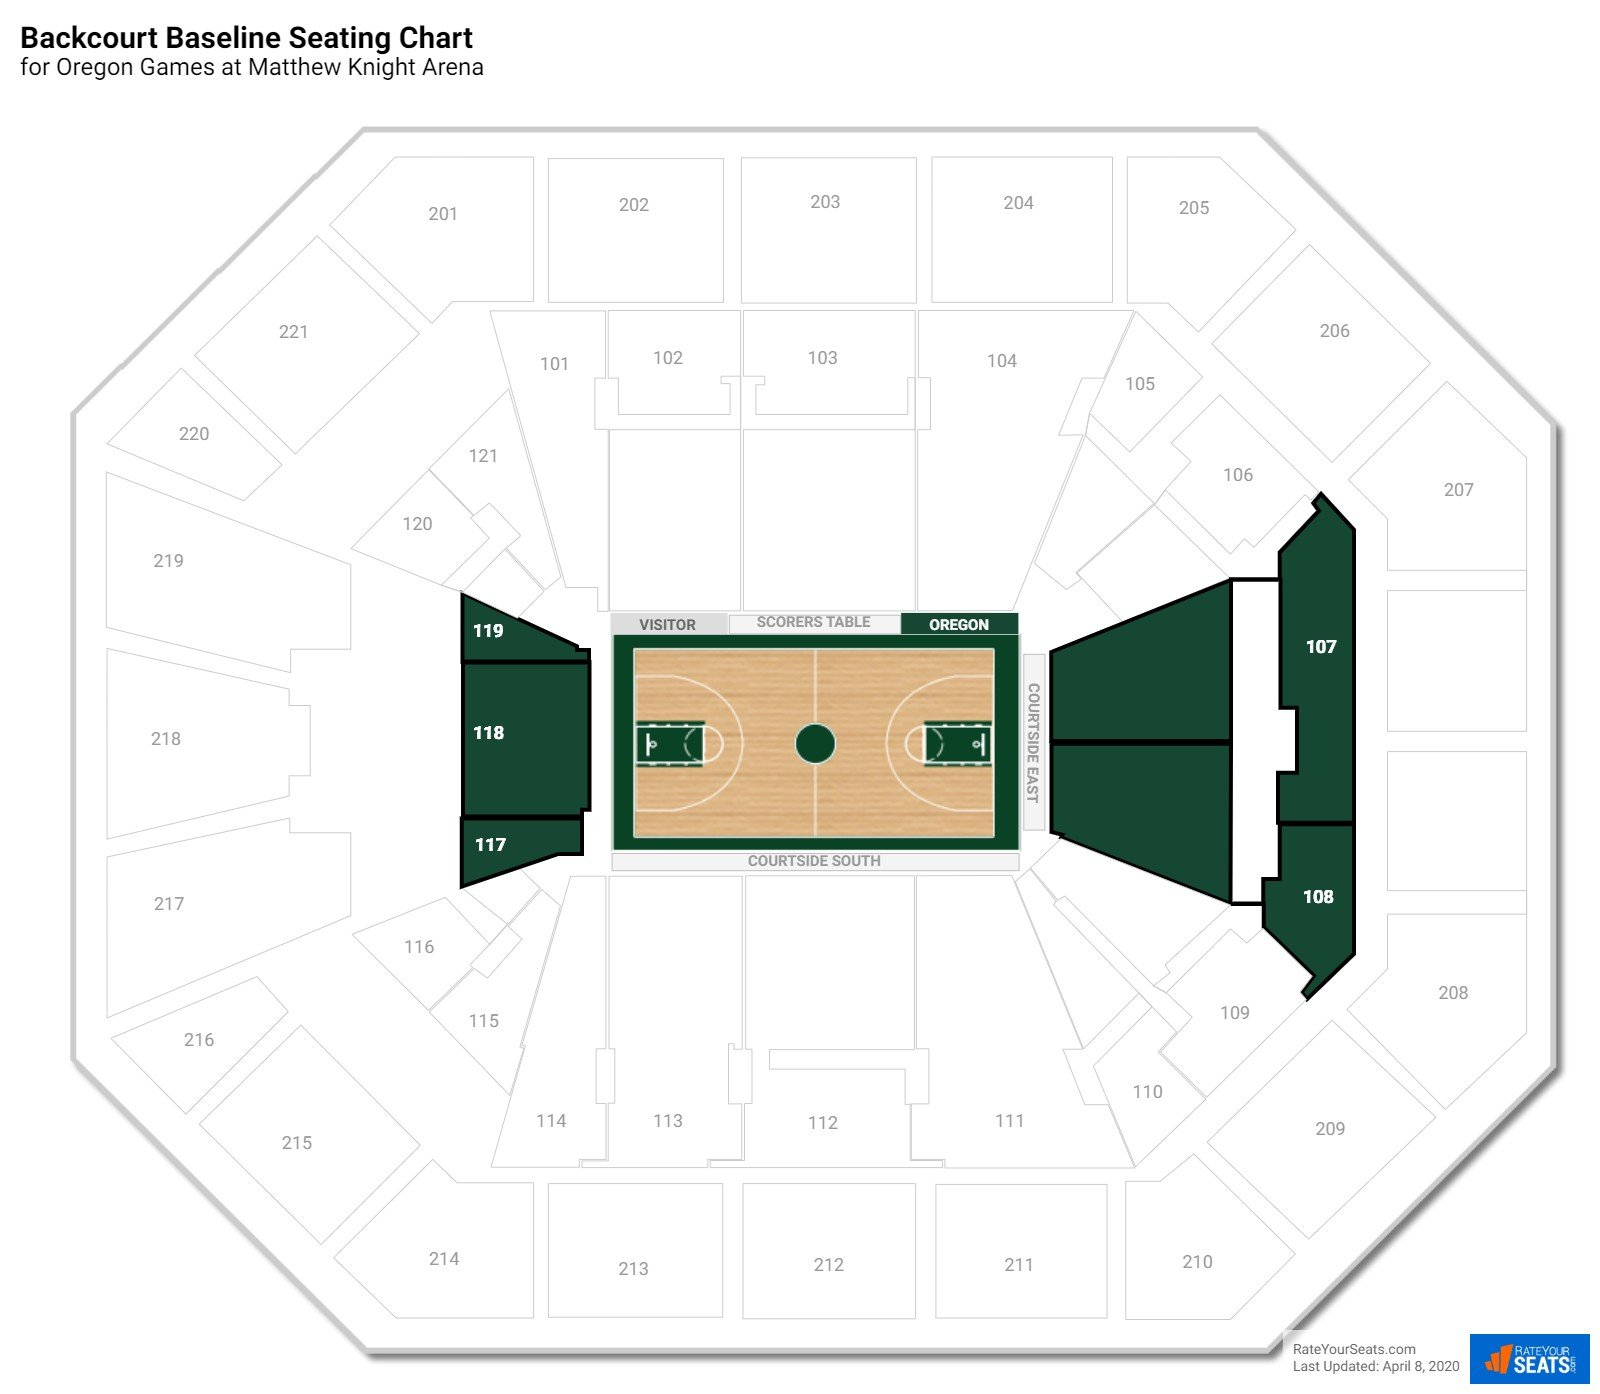 Matthew Knight Arena Seating Chart With Rows